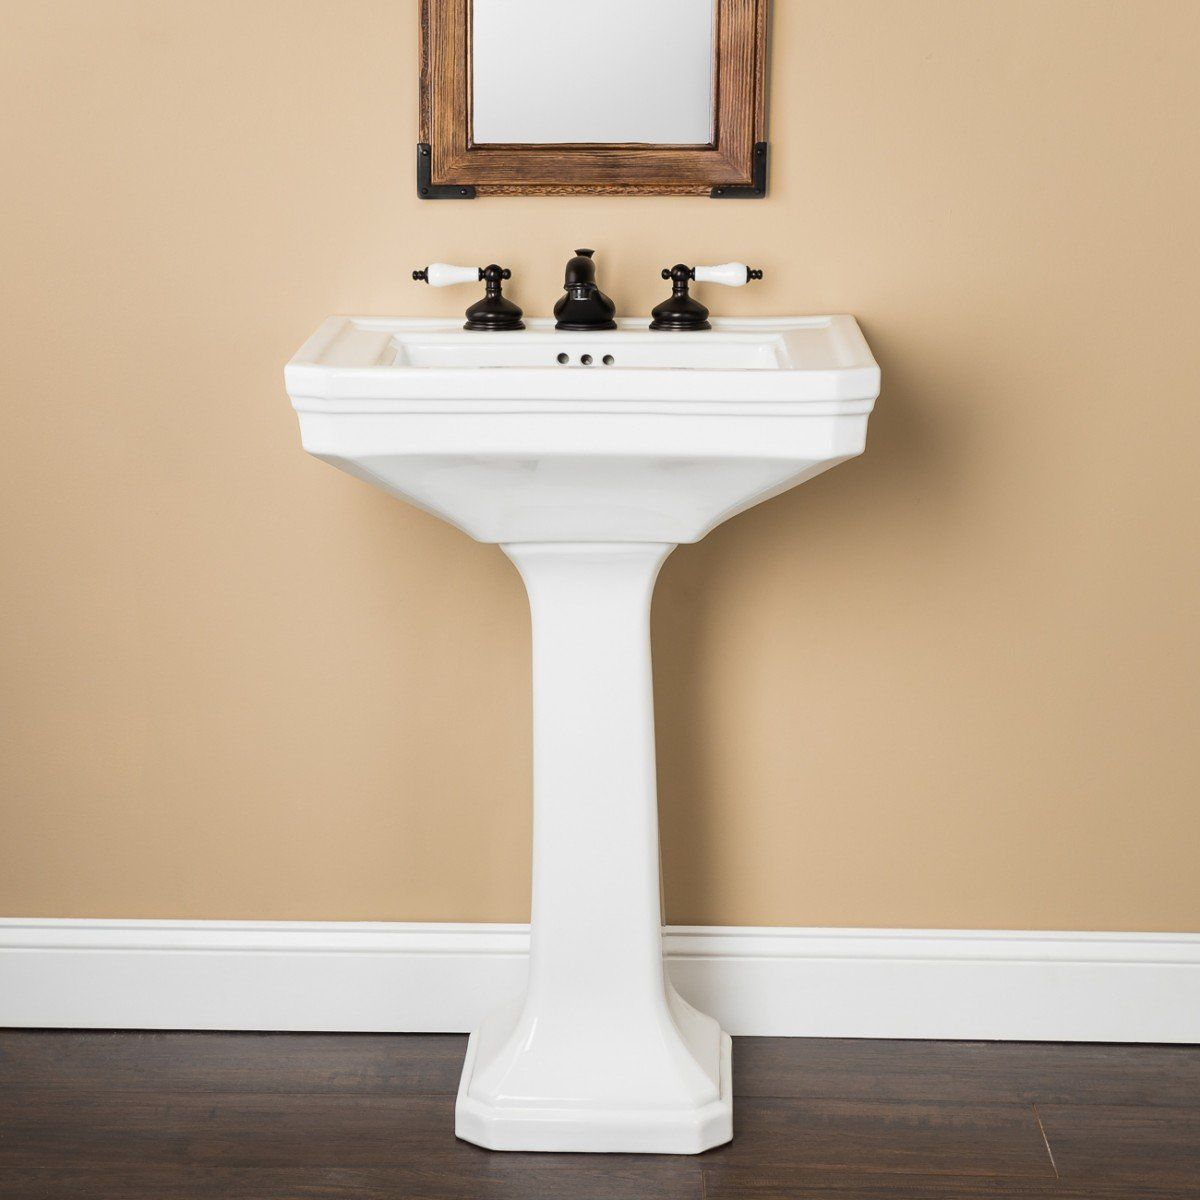 Pedestal Sinks Are Great Space Savers For A Small Bathroom Choose